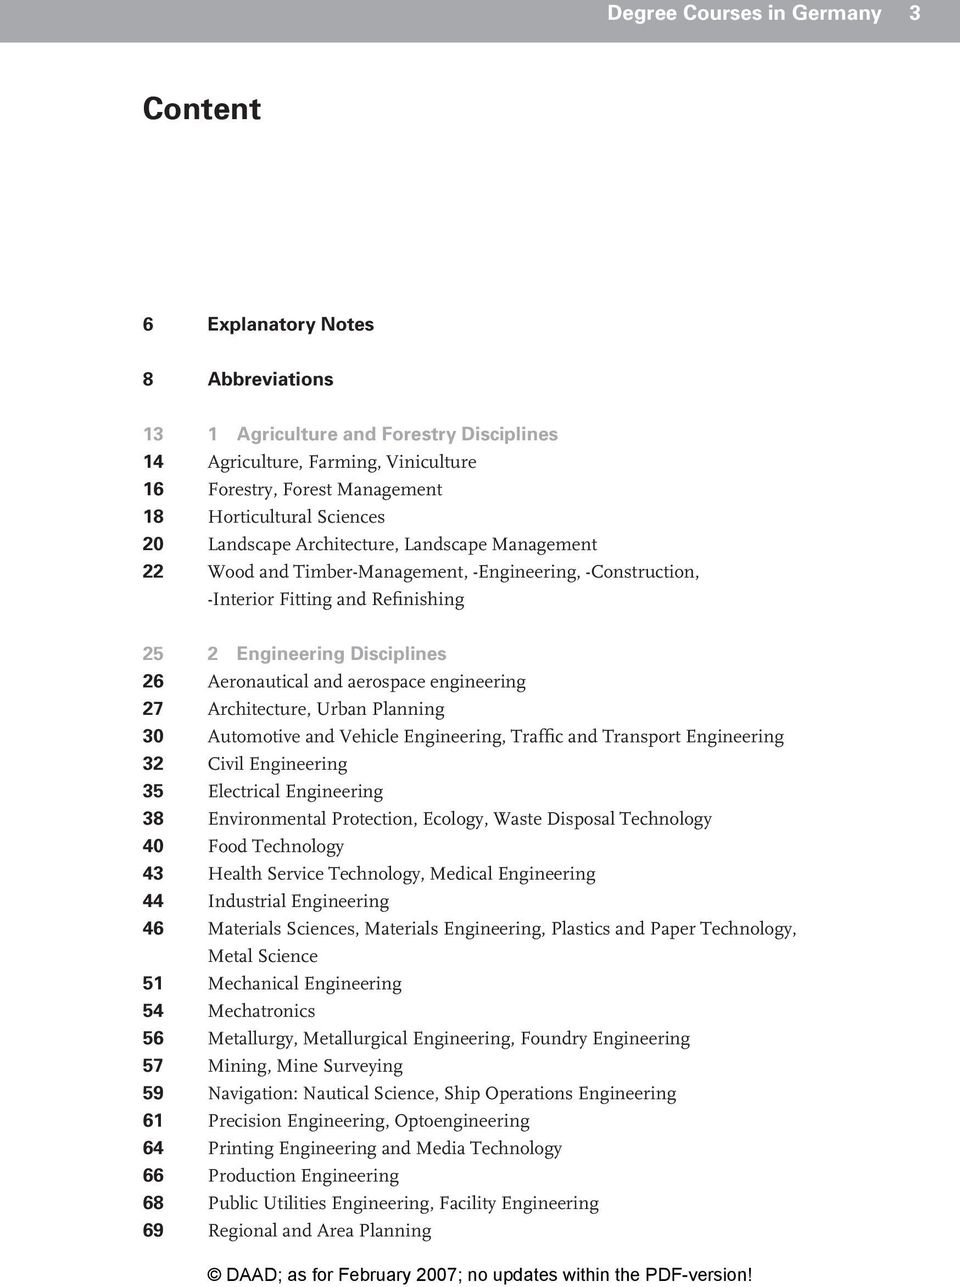 aerospace engineering 27 Architecture, Urban Planning 30 Automotive and Vehicle Engineering, Traffic and Transport Engineering 32 Civil Engineering 35 Electrical Engineering 38 Environmental